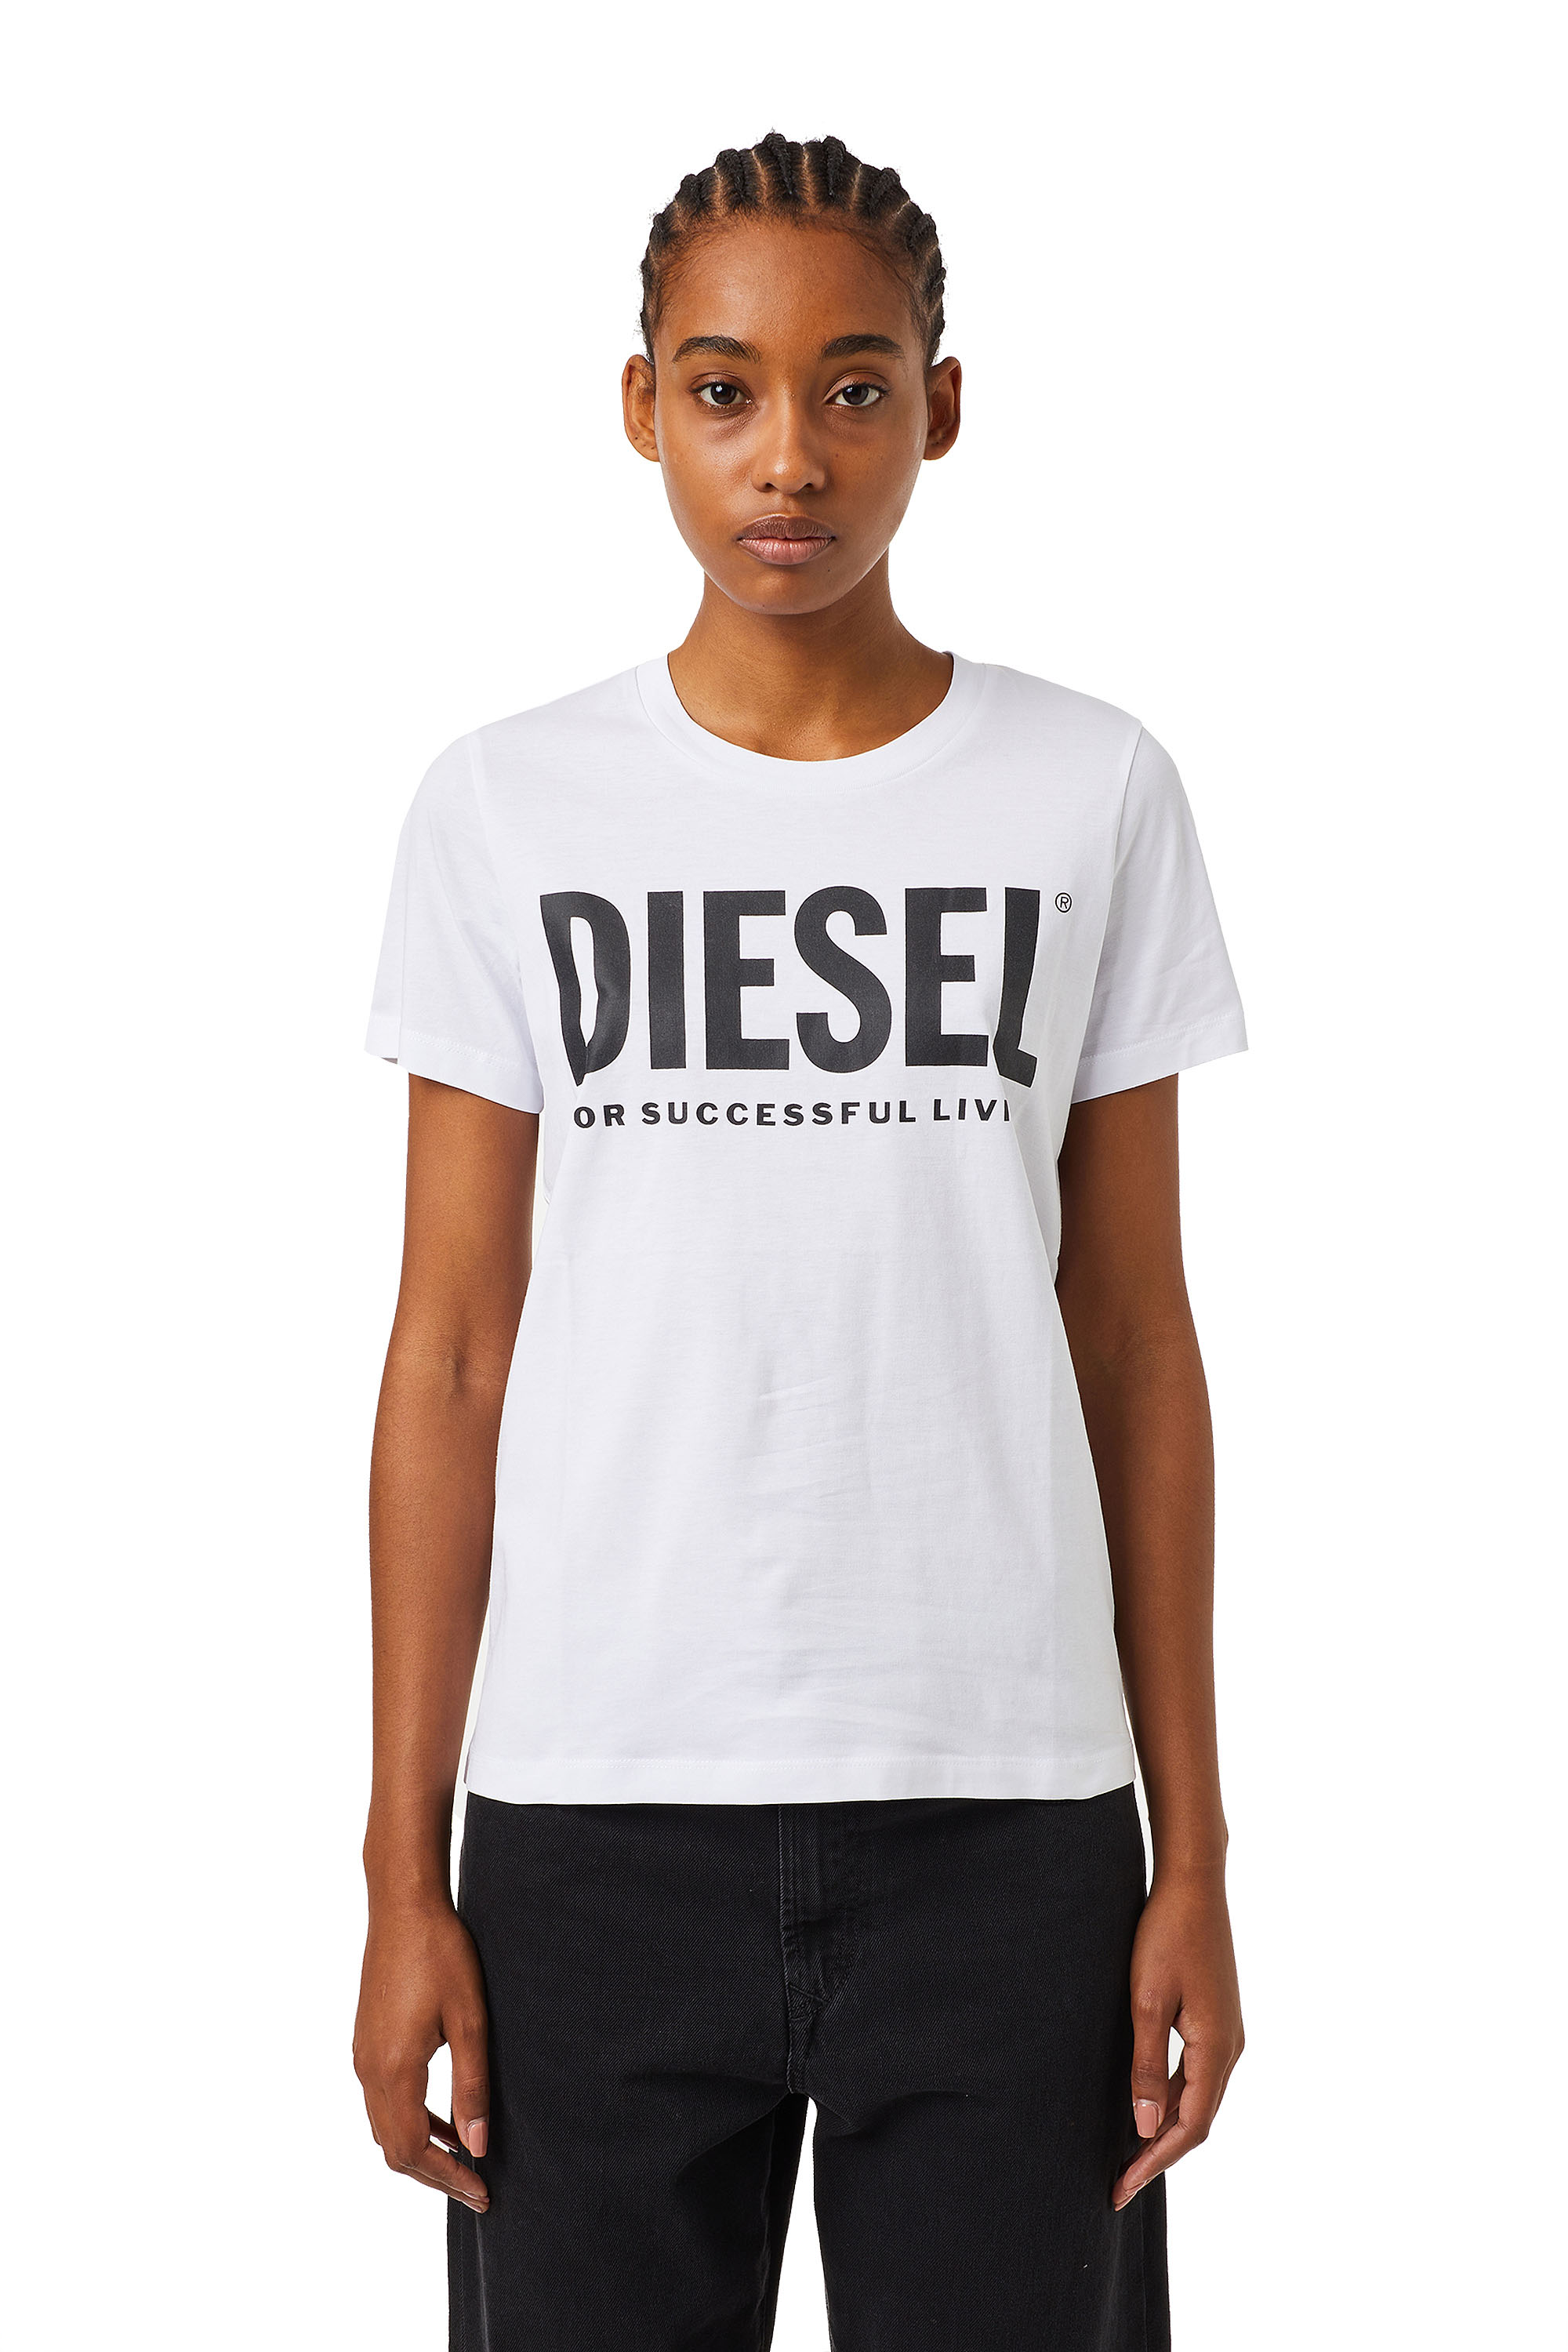 Diesel - T-SILY-WX,  - T-Shirts - Image 1